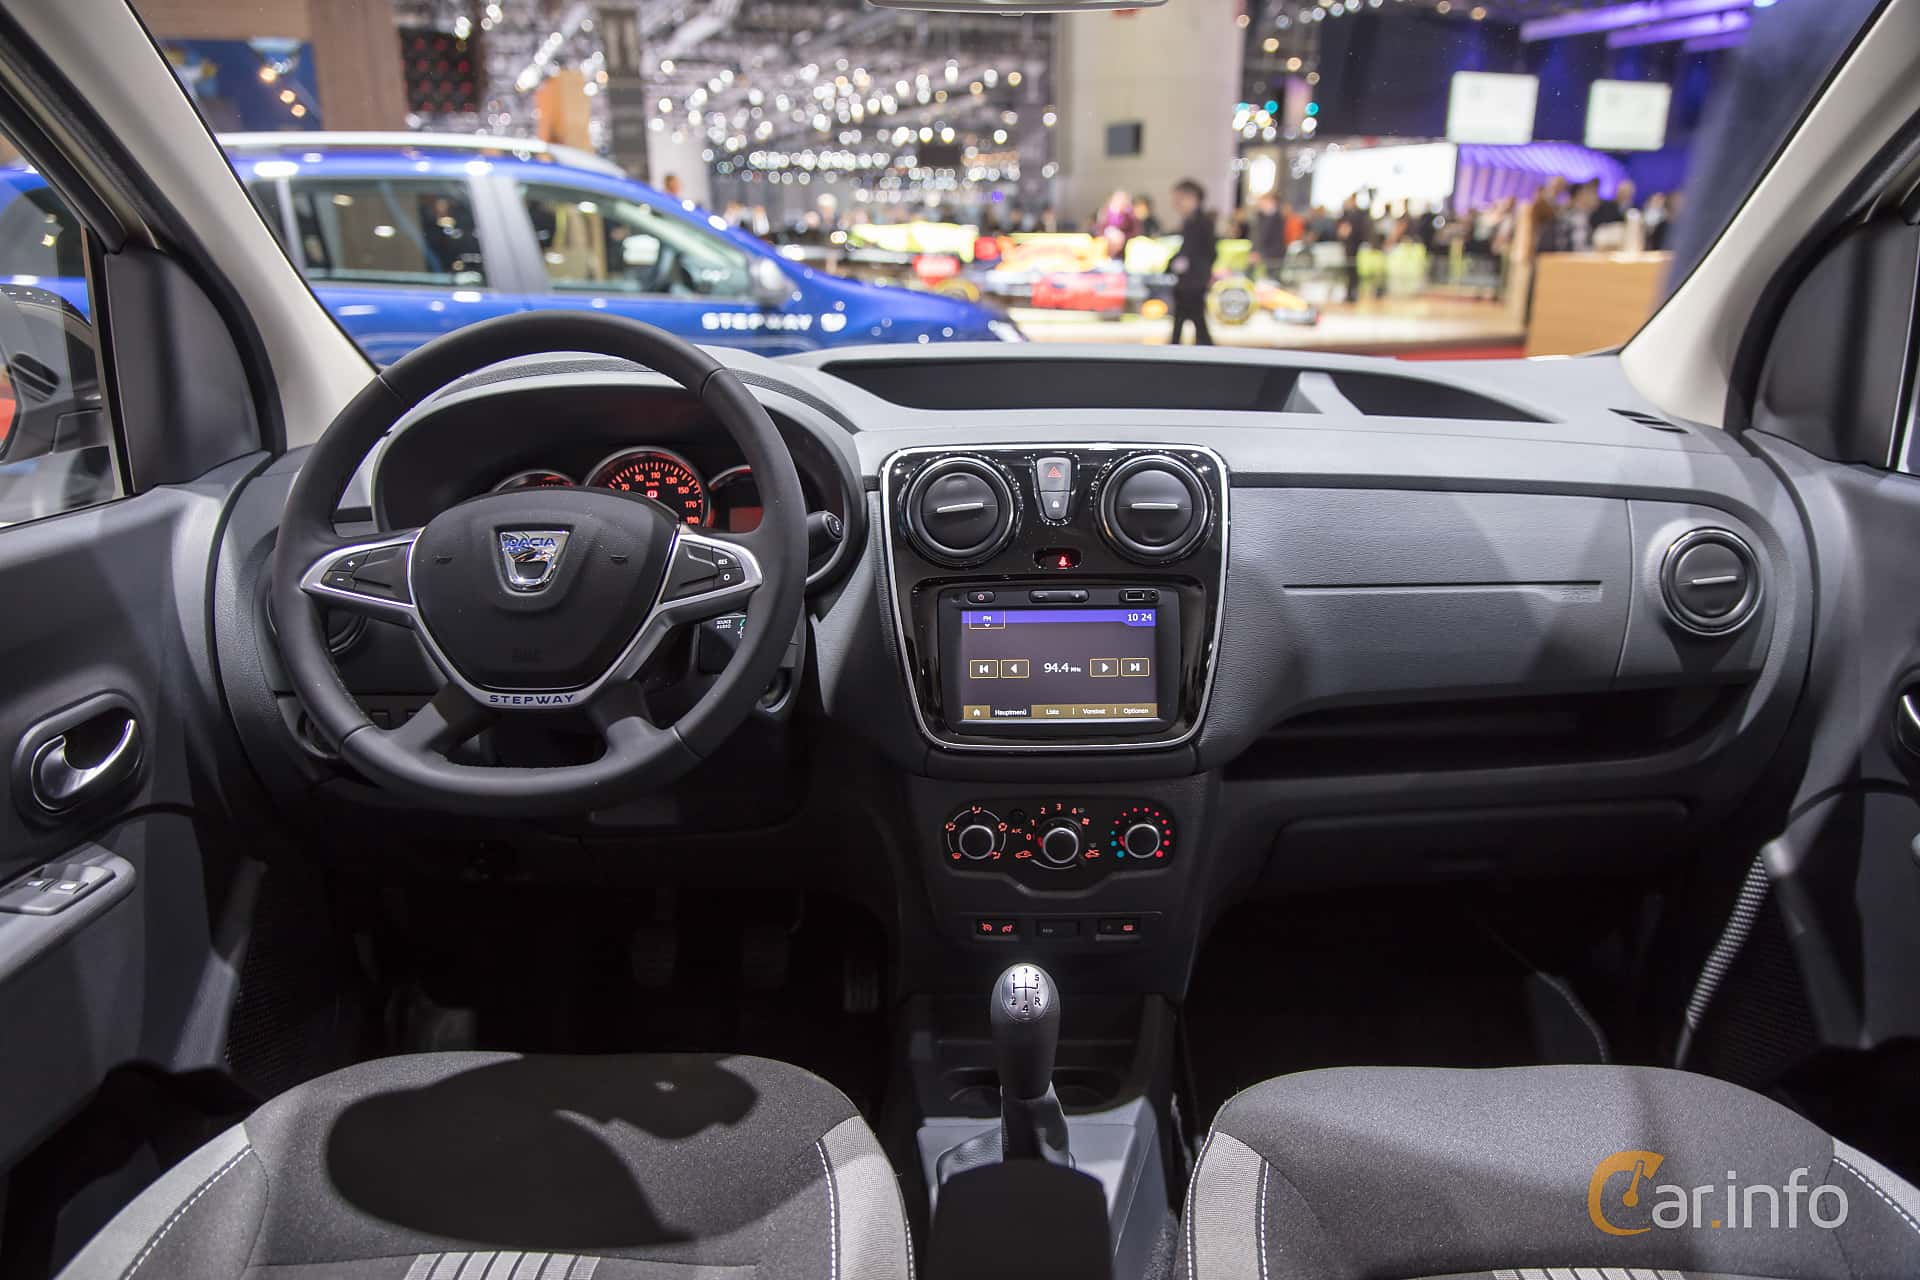 Dacia dokker stepway 1 2 tce manual 115hp 2018 at geneva - Dacia dokker interior ...